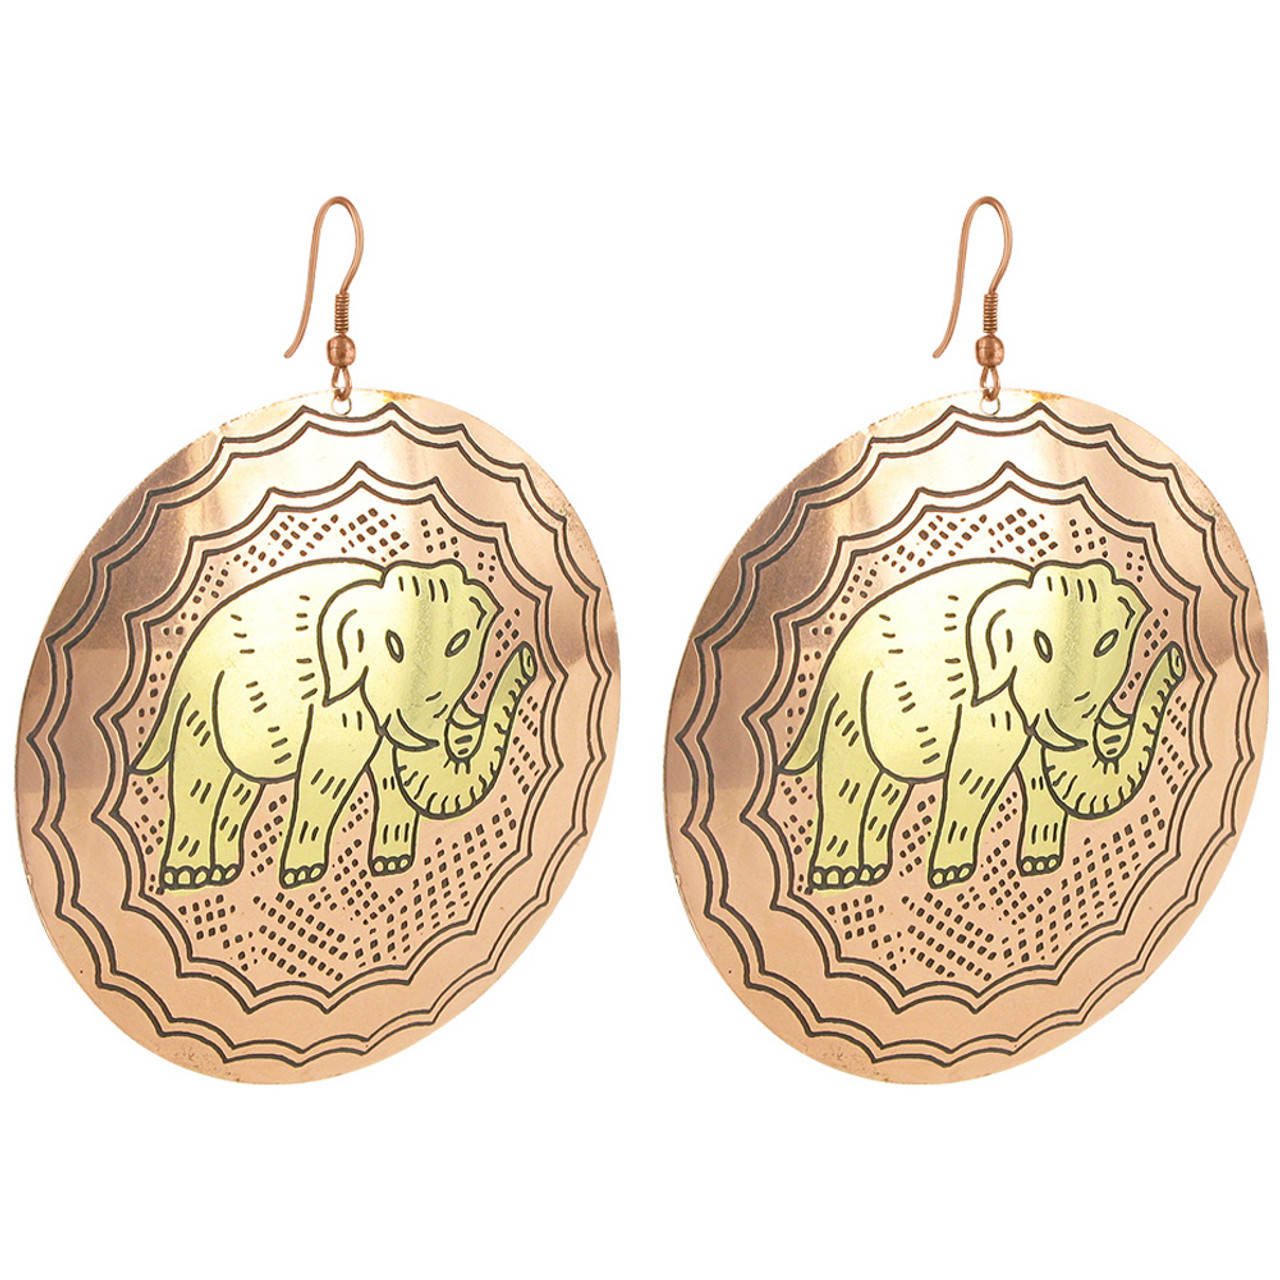 2.4 inch Round Elephant Designer Fashion Drop Earrings with French Wire Findings